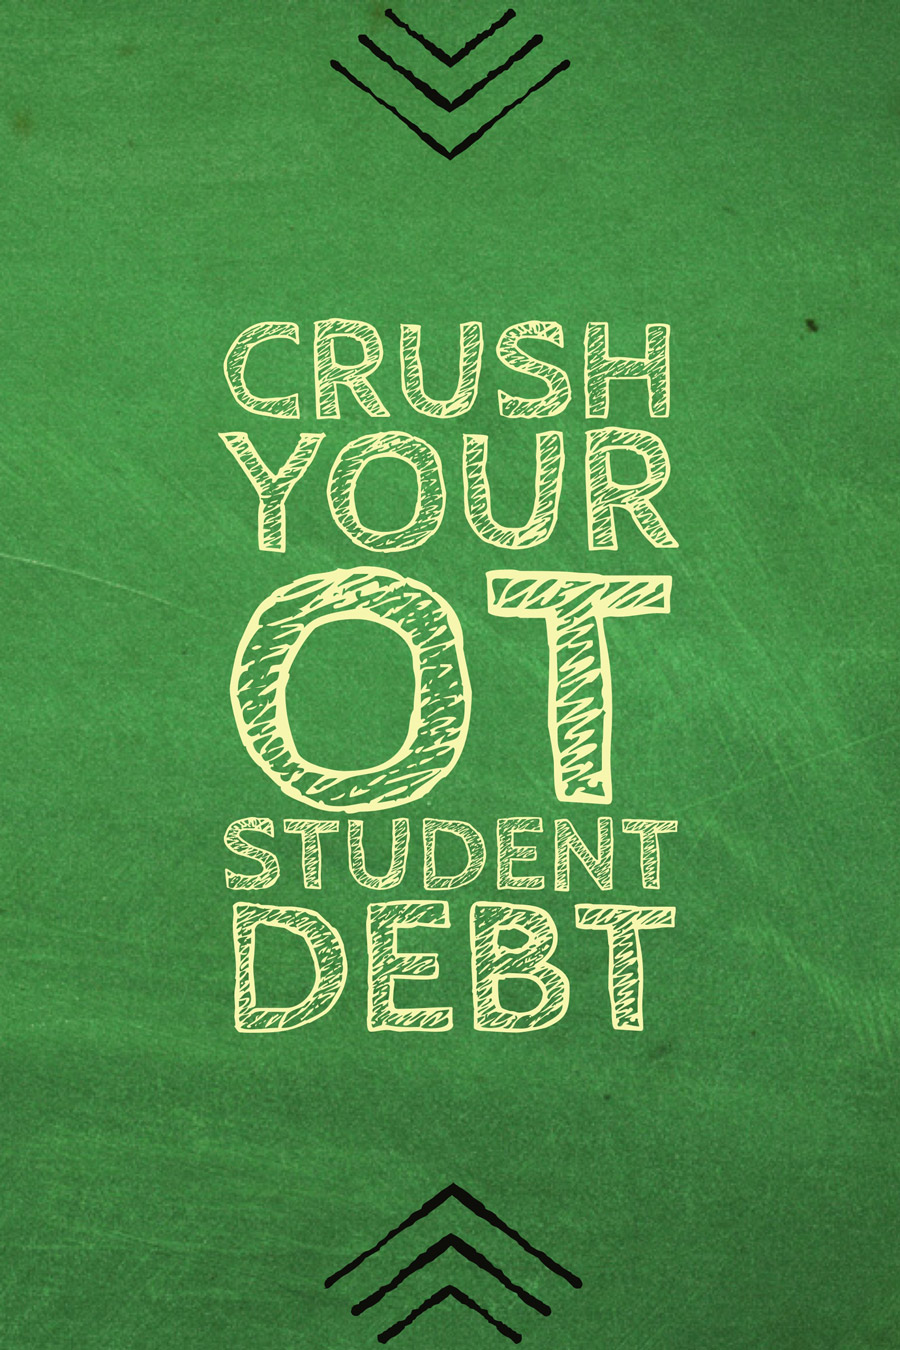 Here are a list of concrete suggestions for crushing your occupational therapy student debt.